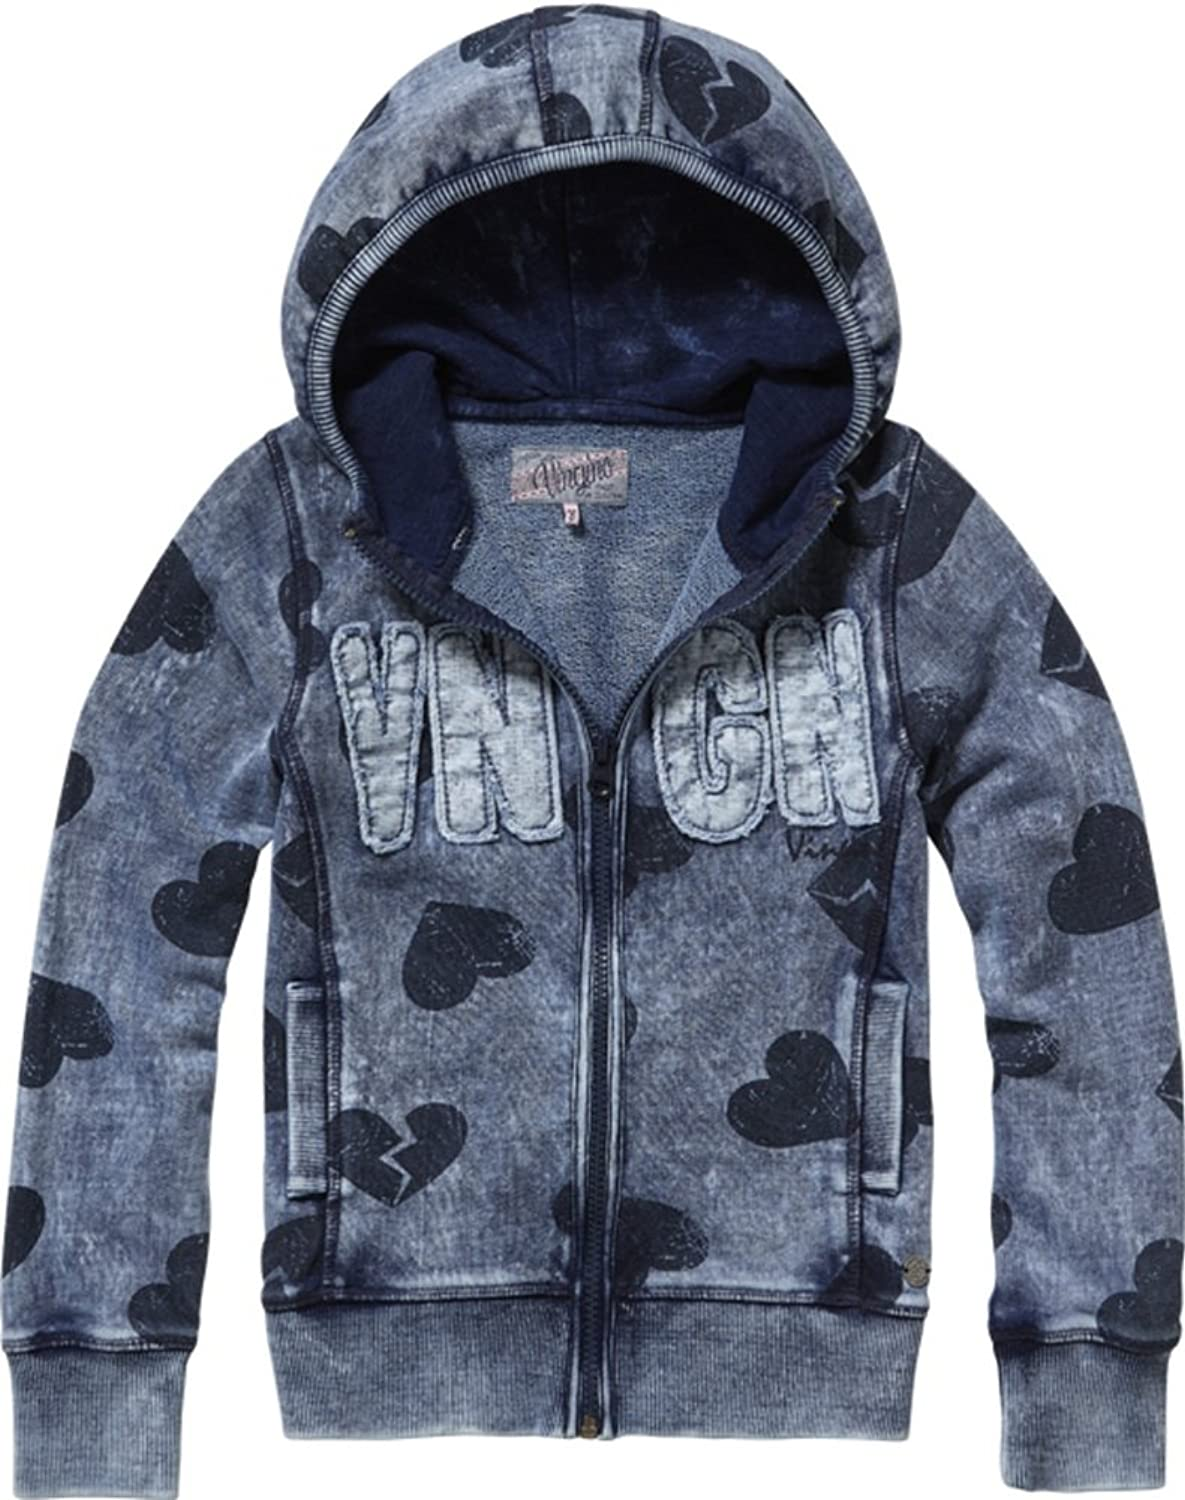 Vingino Sweatjacke m. Kapuze Nasira Girls, Fb. Indigo blue